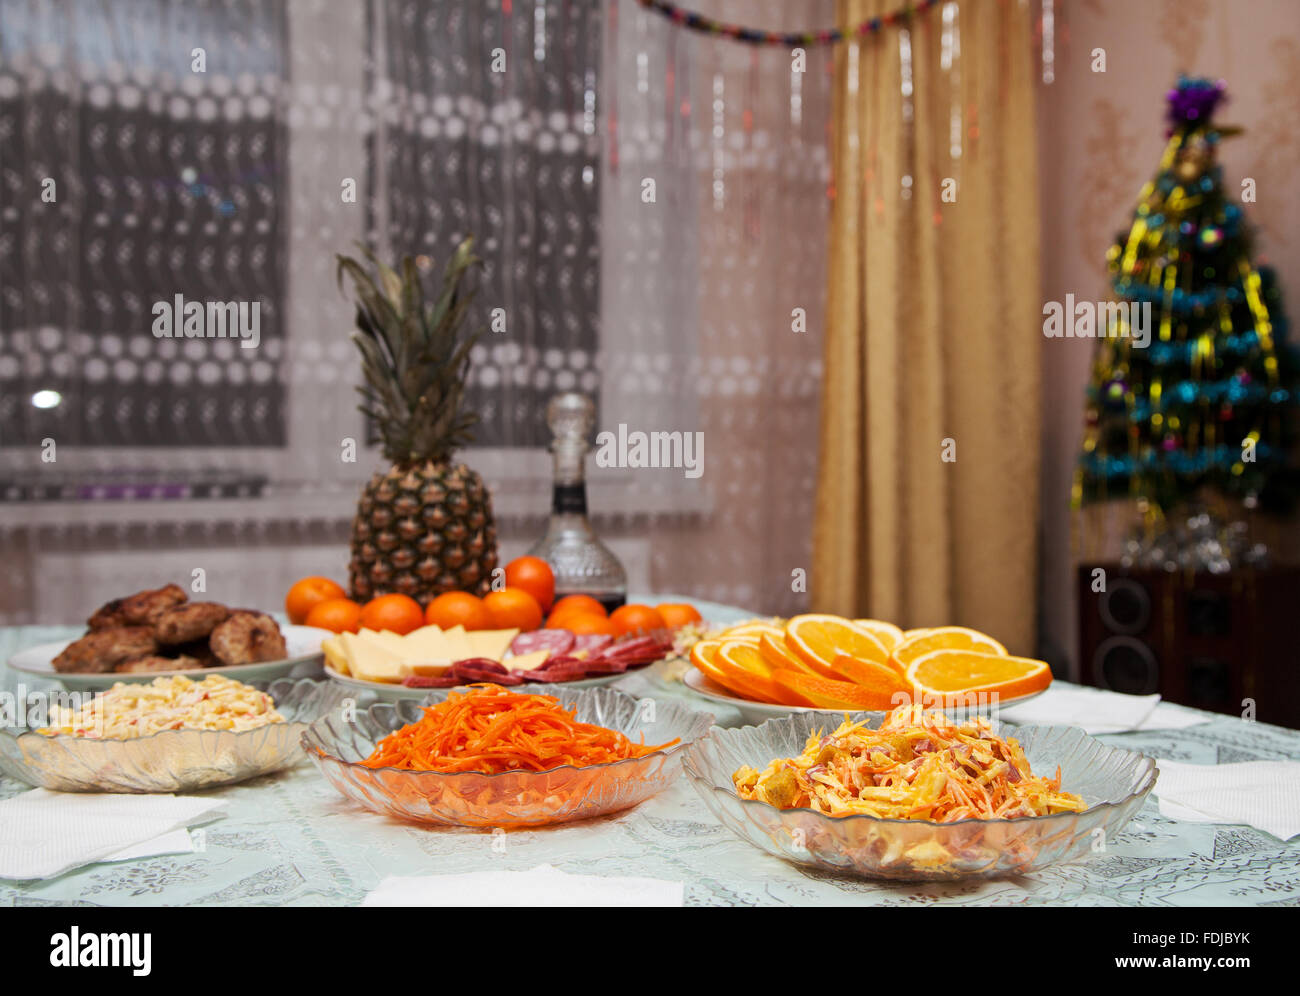 festively laid table with salads, pineapple and  tangerines - Stock Image